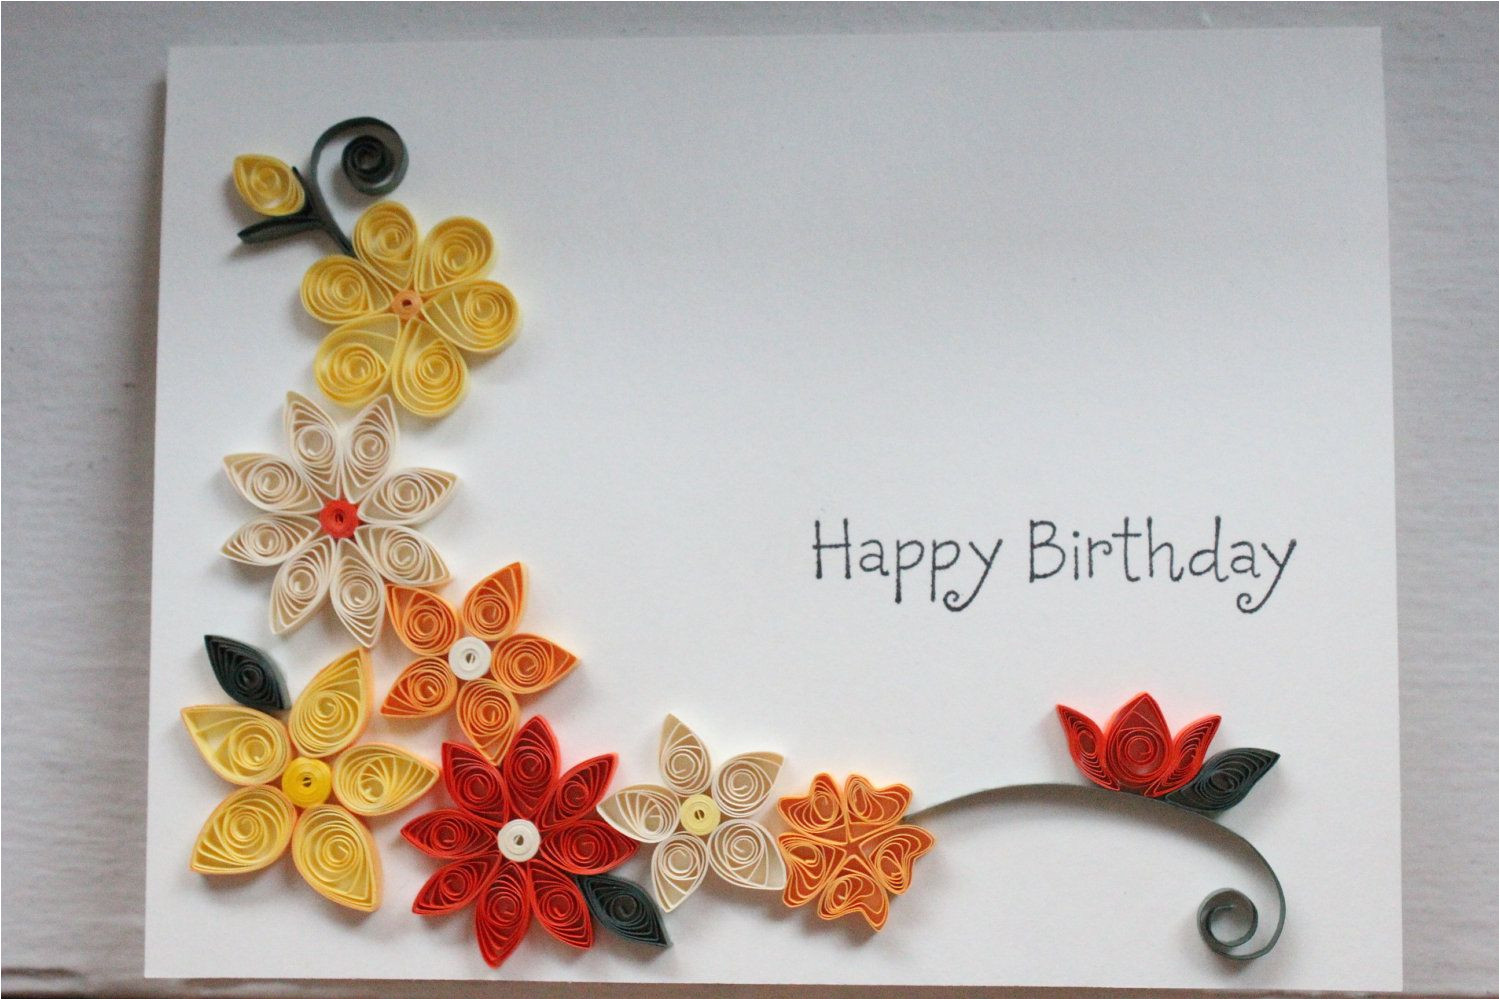 Greeting Card Designs Handmade Paper Handcrafted Birthday Card with Paper Quilled Flowers